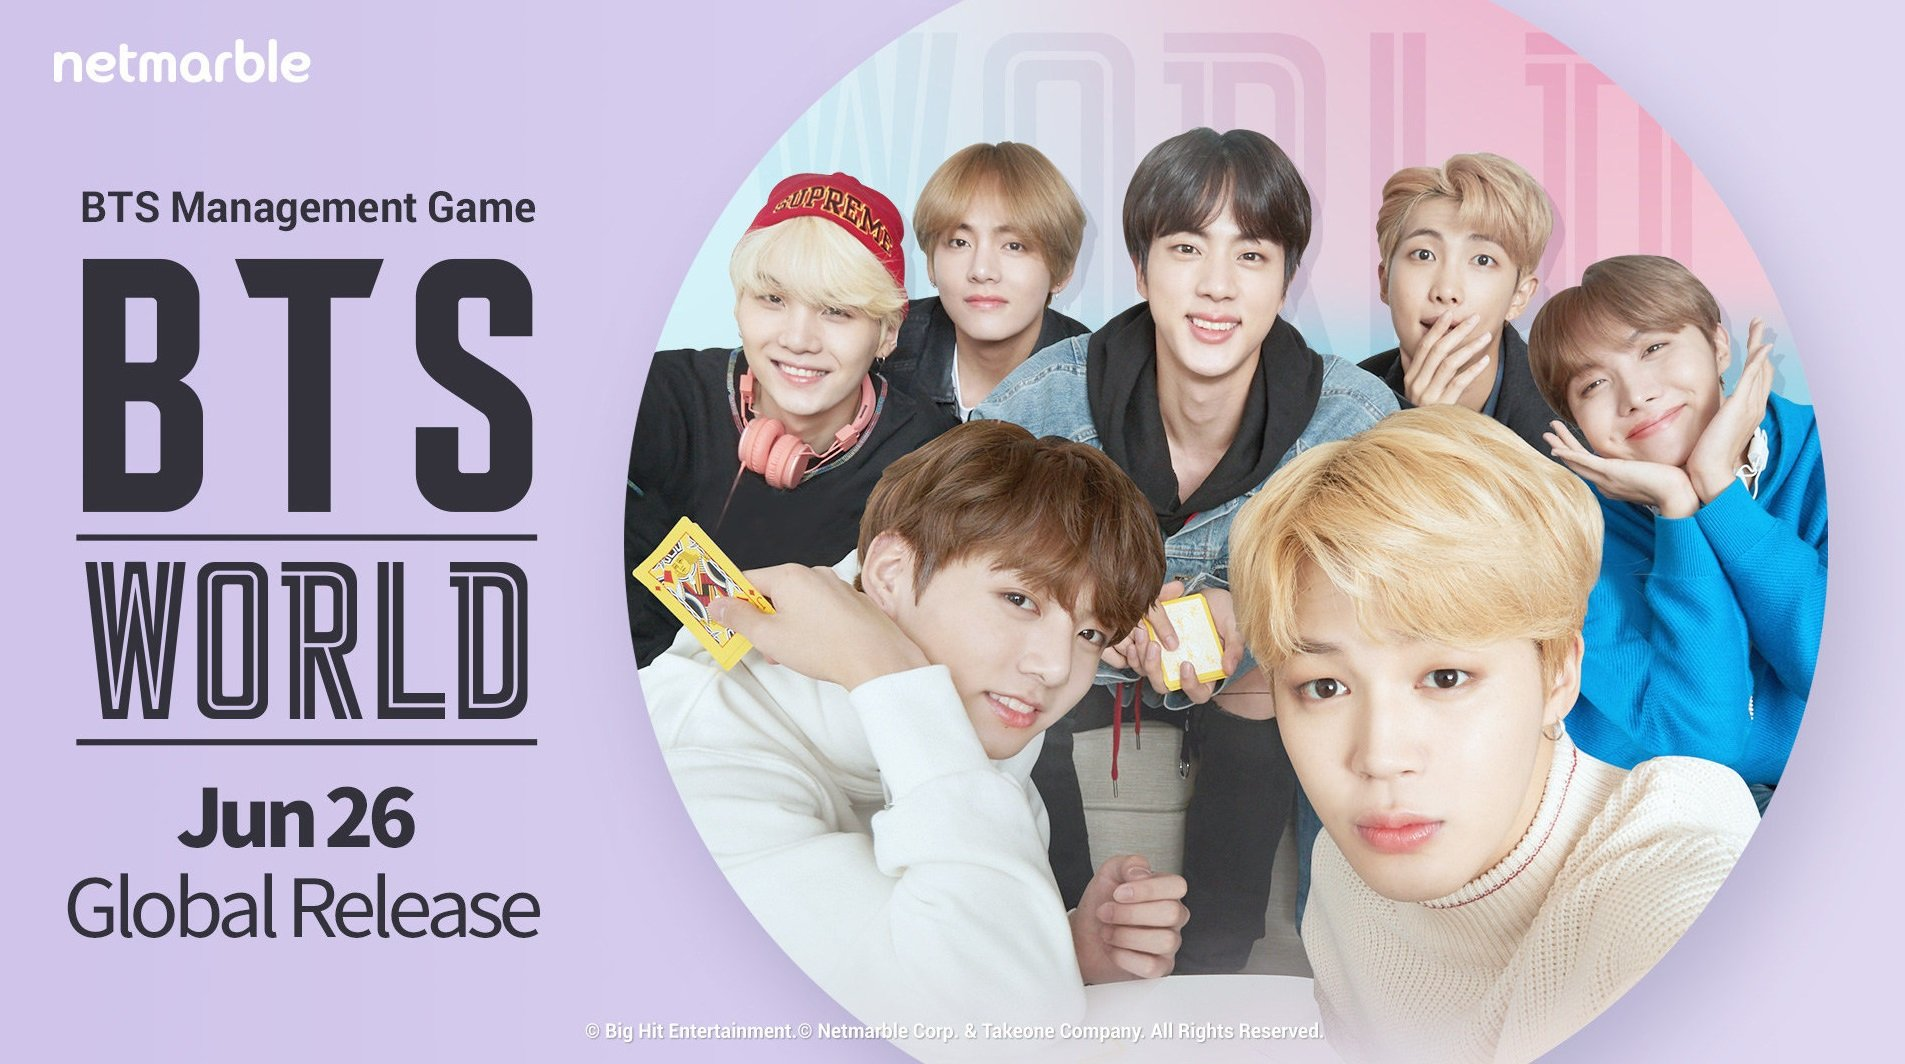 You can level up your collected photo cards in BTS World by acquiring and spending Blossoms.